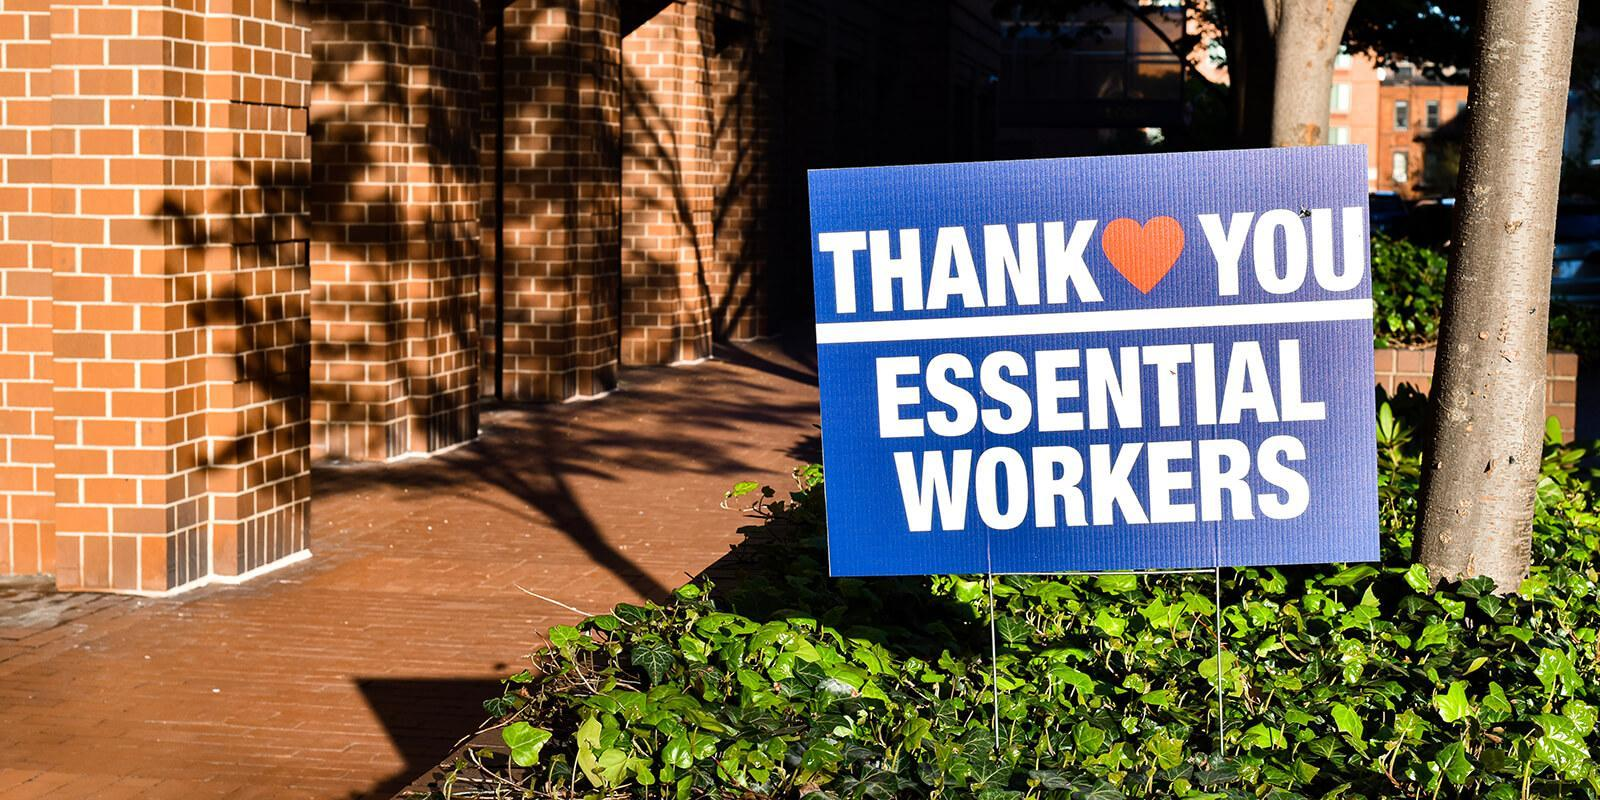 Thank you essential workers sign